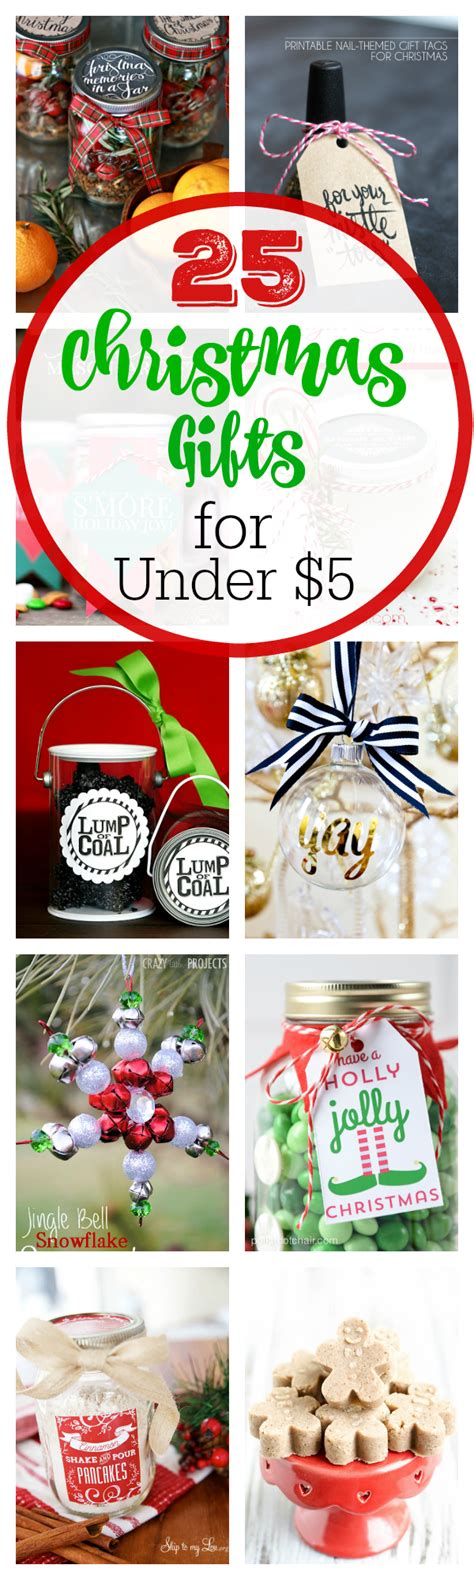 25 dollar hot christmas gifts 25 gifts for 5 projects